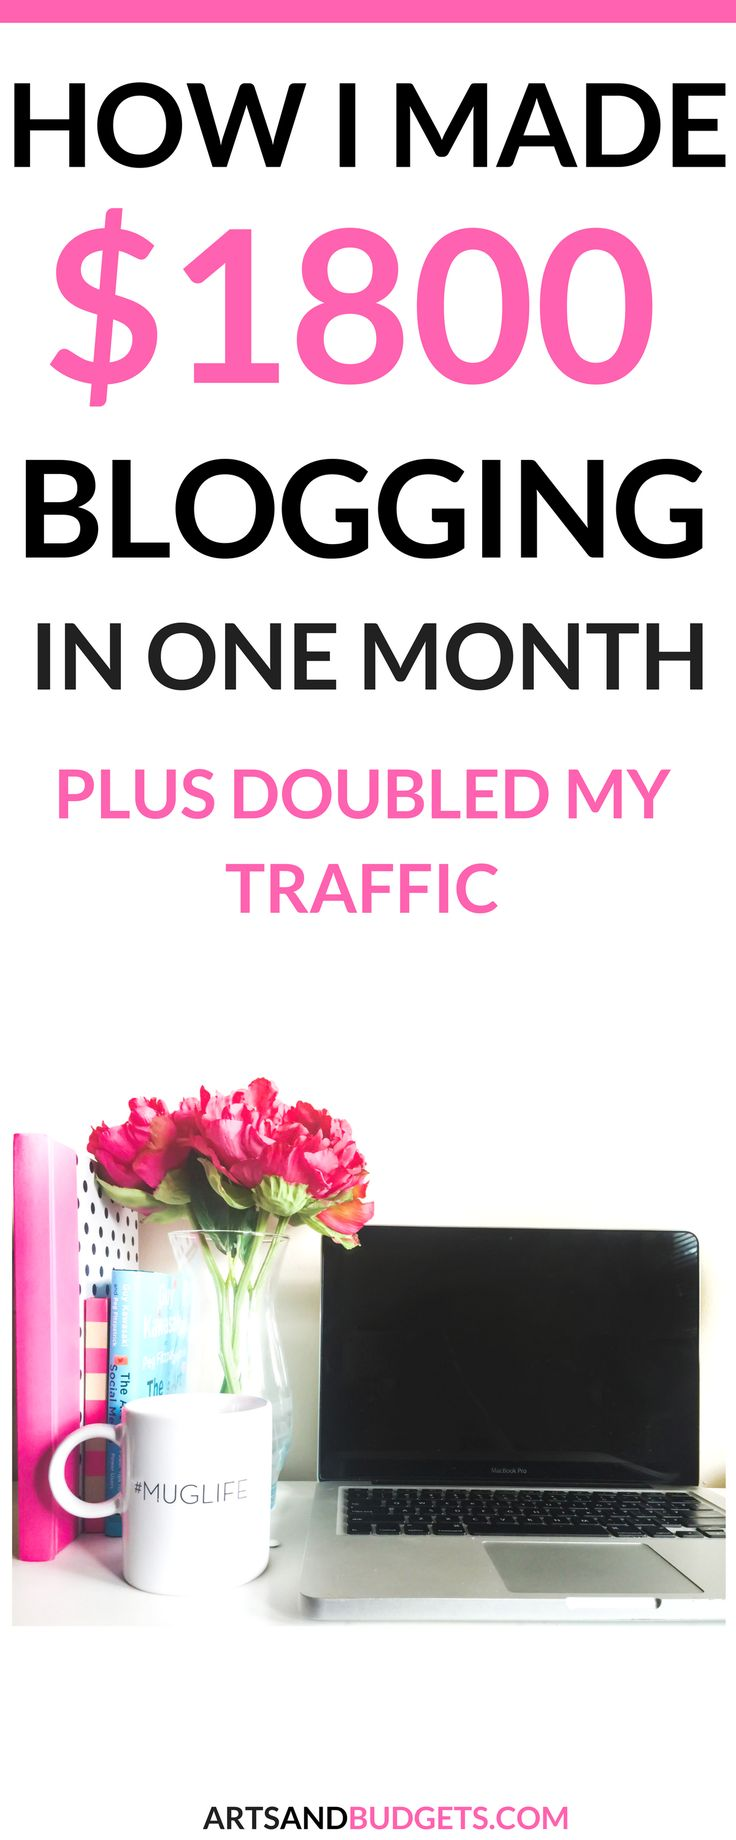 How I Made $1800 Blogging In One Month. Plus Doubled My Traffic